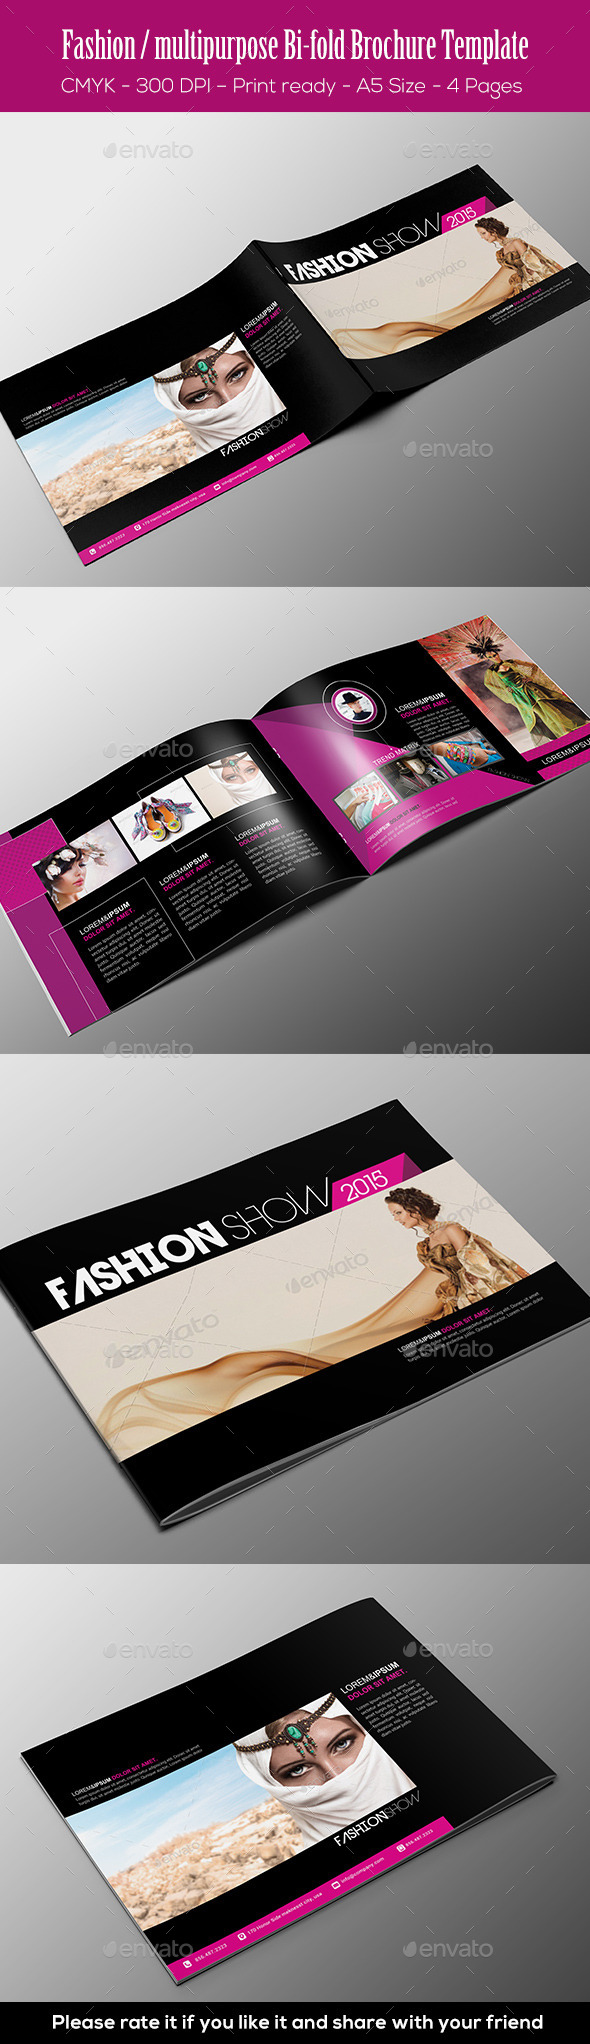 GraphicRiver Fashion Multipurpose Bi-fold Brochure Template 11326020